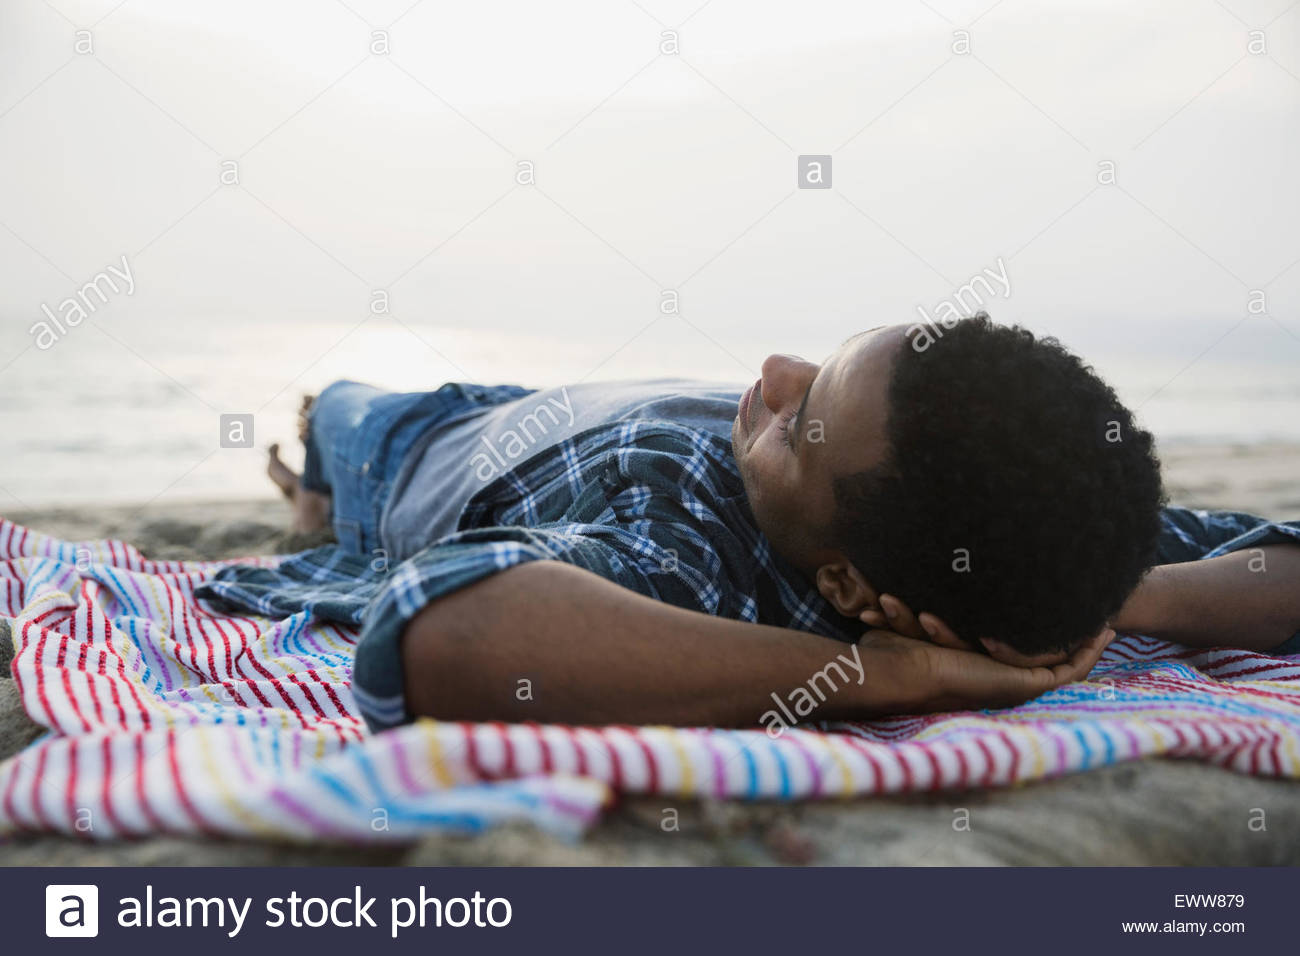 Serene man sleeping on beach blanket - Stock Image